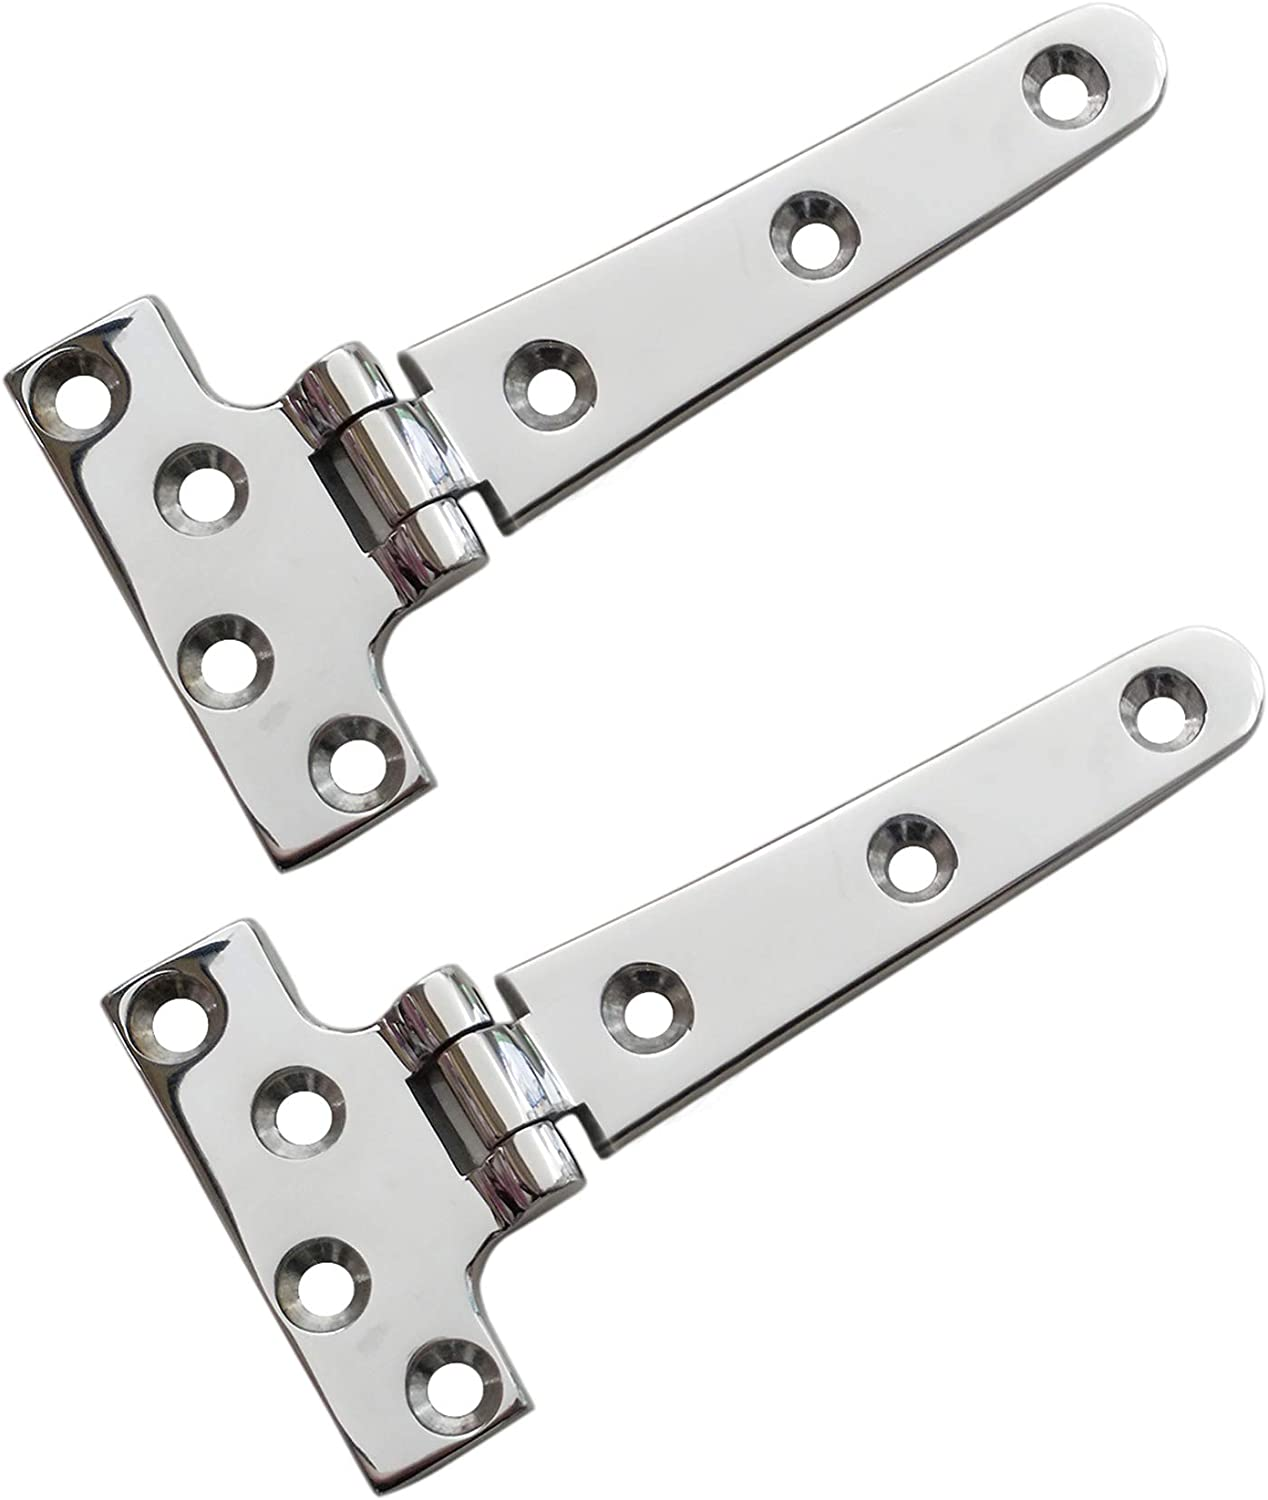 """keehui 2 Pieces of 316 SS Marine Grade Heavy Duty T Hinge 4'' x 2"""" Casting Hinge for Boat& AUTO"""